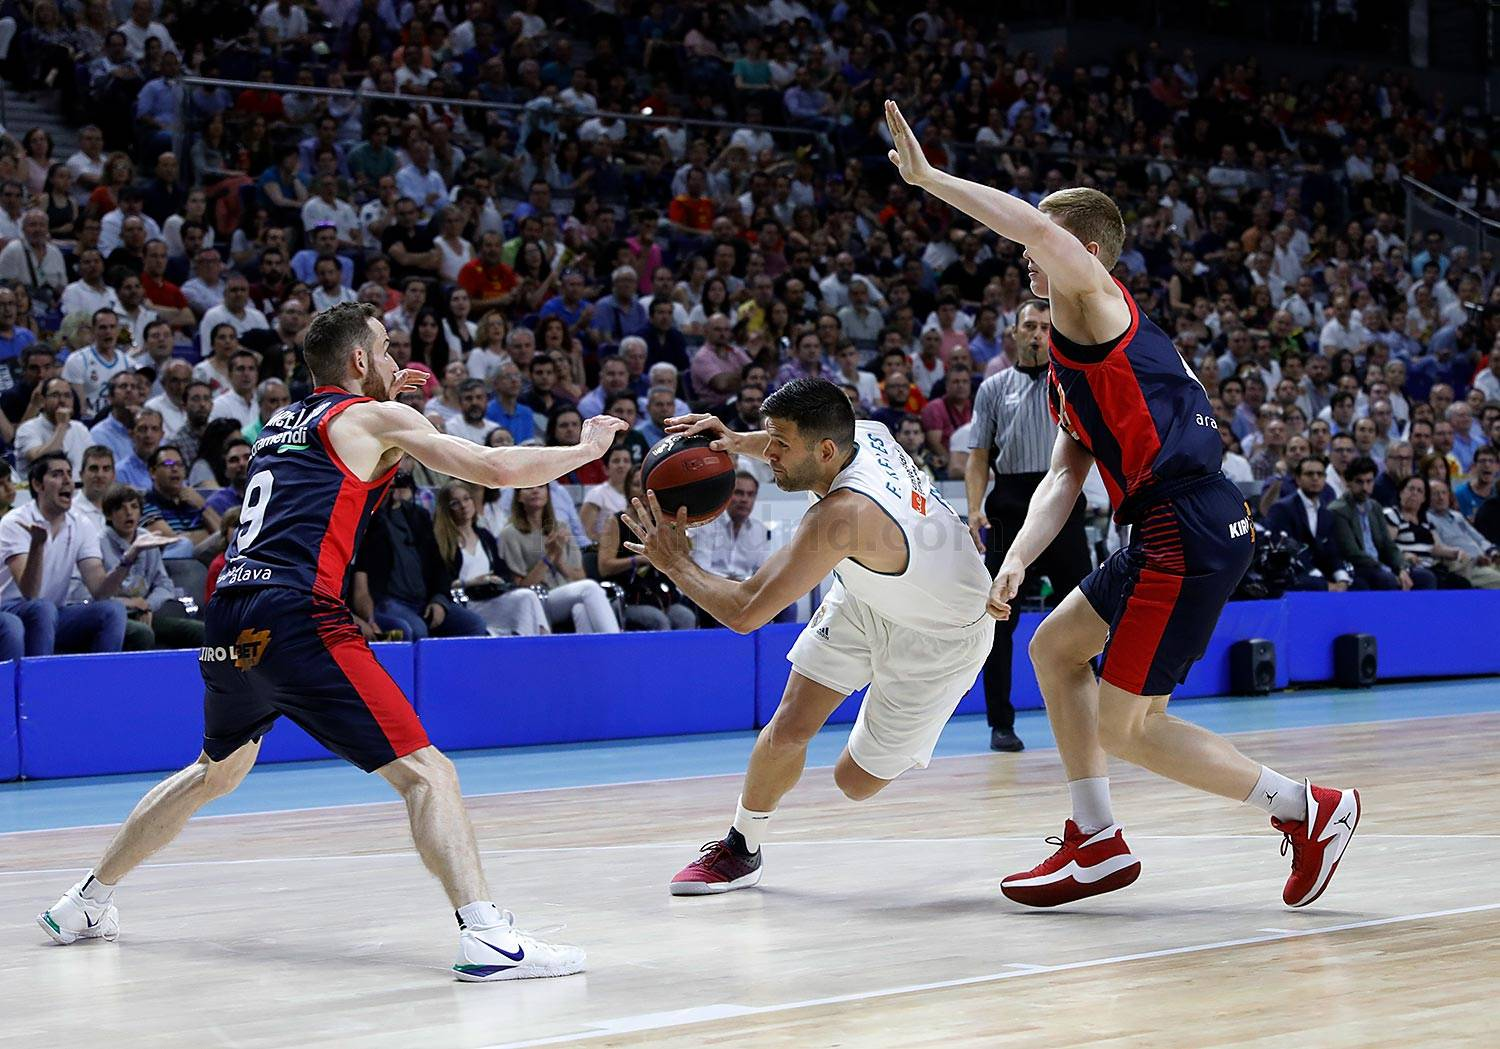 Real Madrid - Real Madrid - Kirolbet Baskonia - 16-06-2018